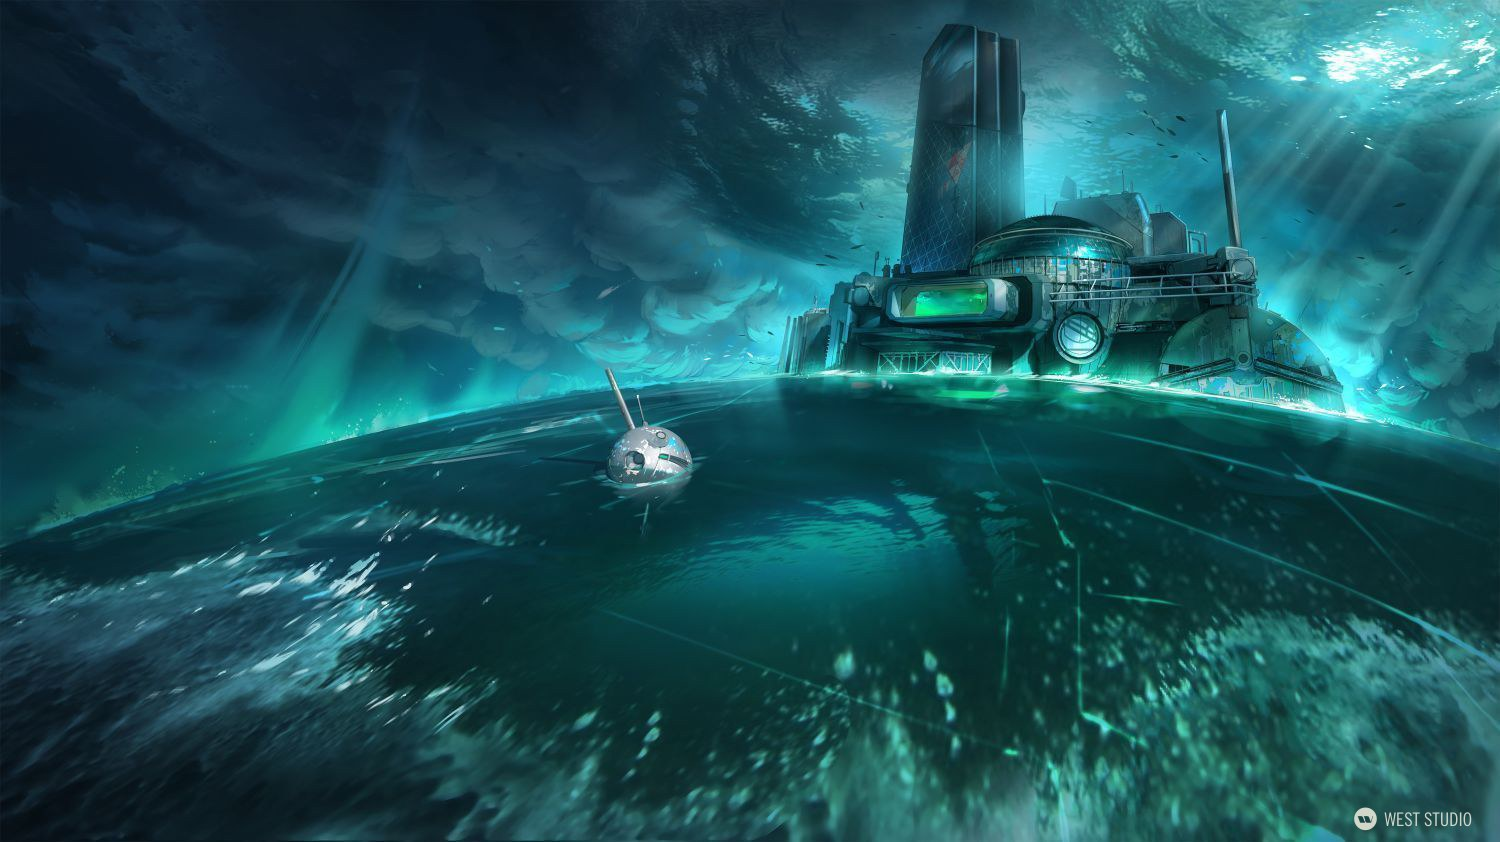 underwater, labratory, mysterious, waves